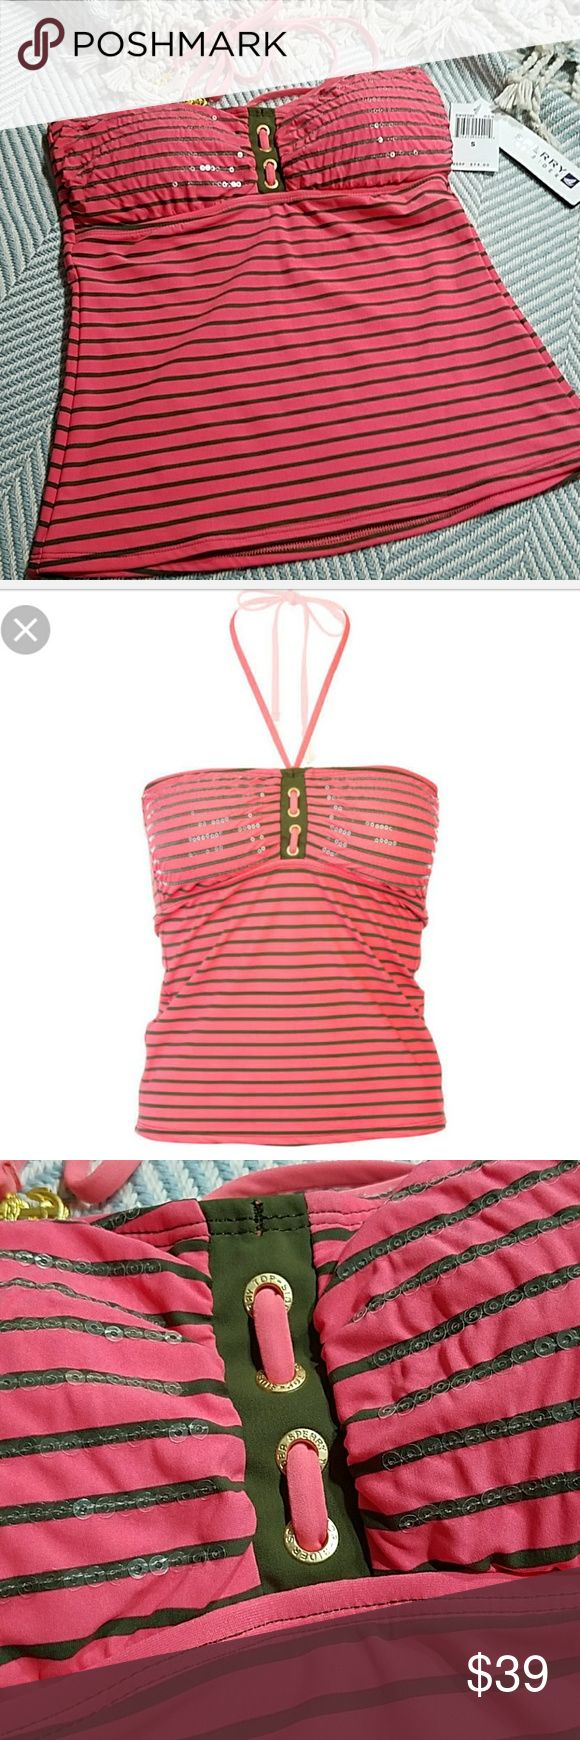 Sperry Top-Sider Tankini Top Gorgeous bright coral with olive accents lined tanking top. Lightly padded soft molded cups. Sequin stitching on chest for just a little added sparkle. Fully lined inside. Neck tie detail with goldtone anchor weights. Beautiful front detail.straight back.sewen in side ribs. Wear over bikini bottoms or shorts. Sperry Top-Sider Swim